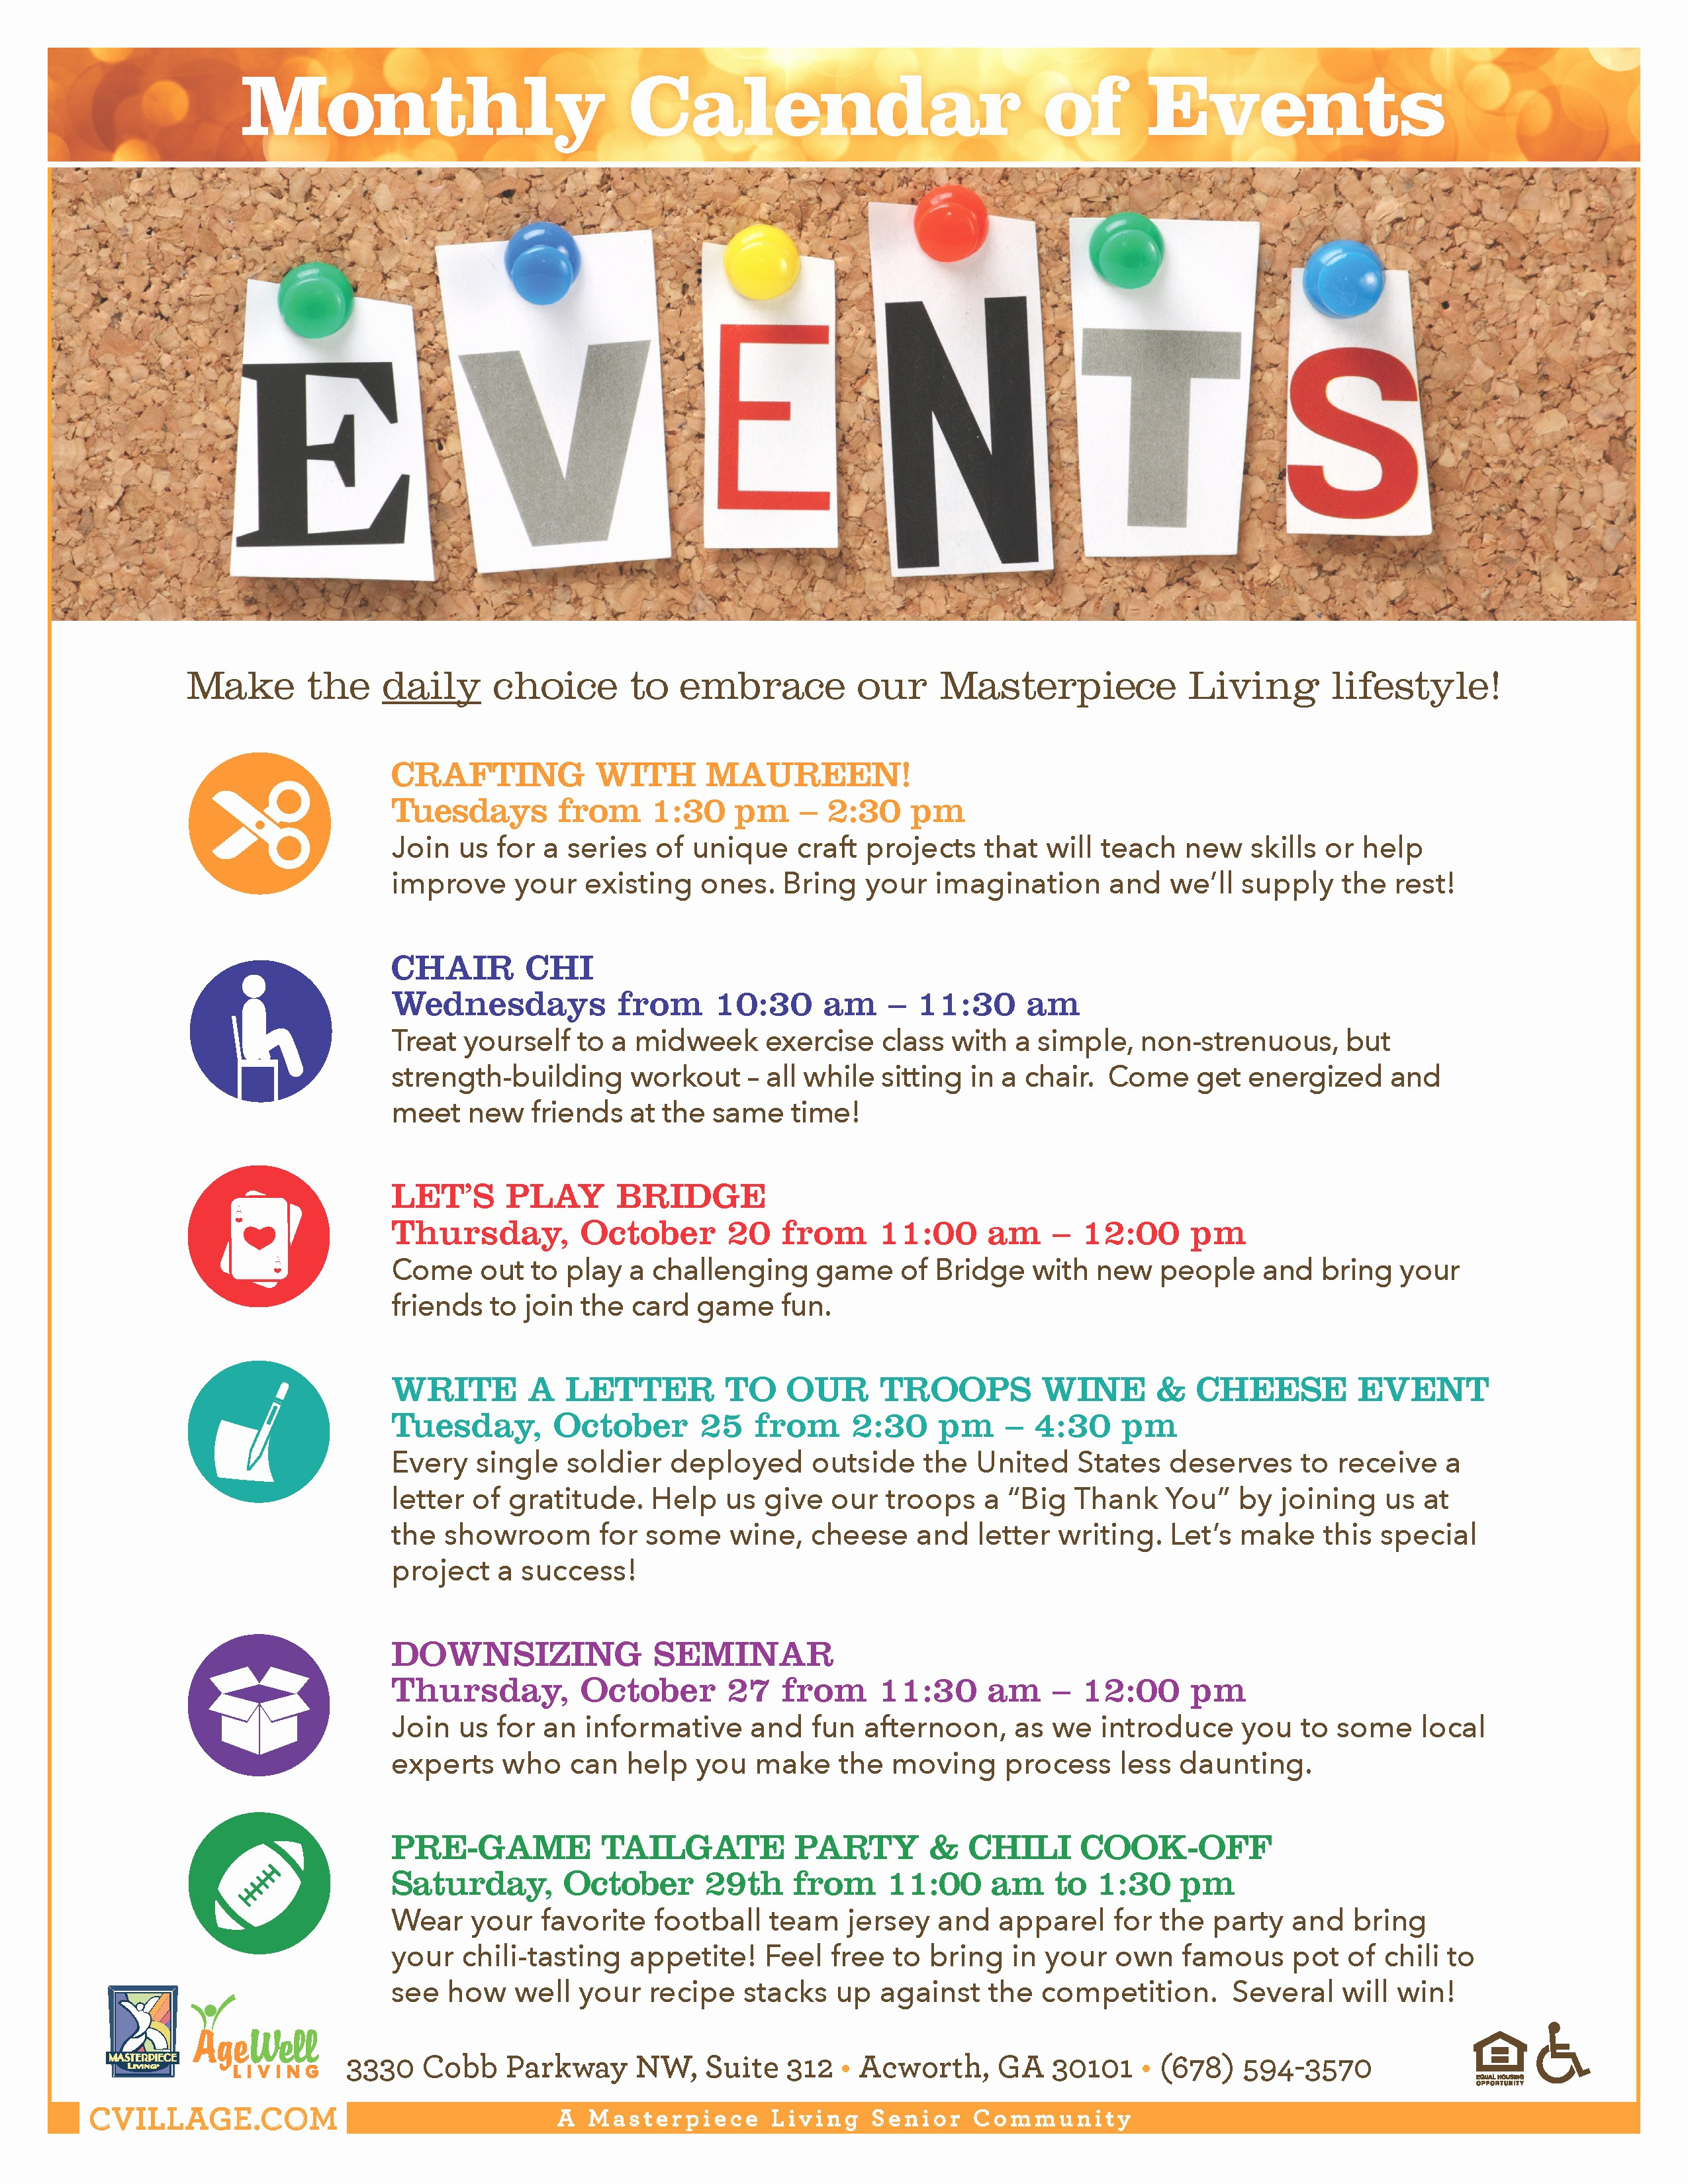 Calendar Of events Template Word New Celebration Village Write A Letter to Our Troops Campaign